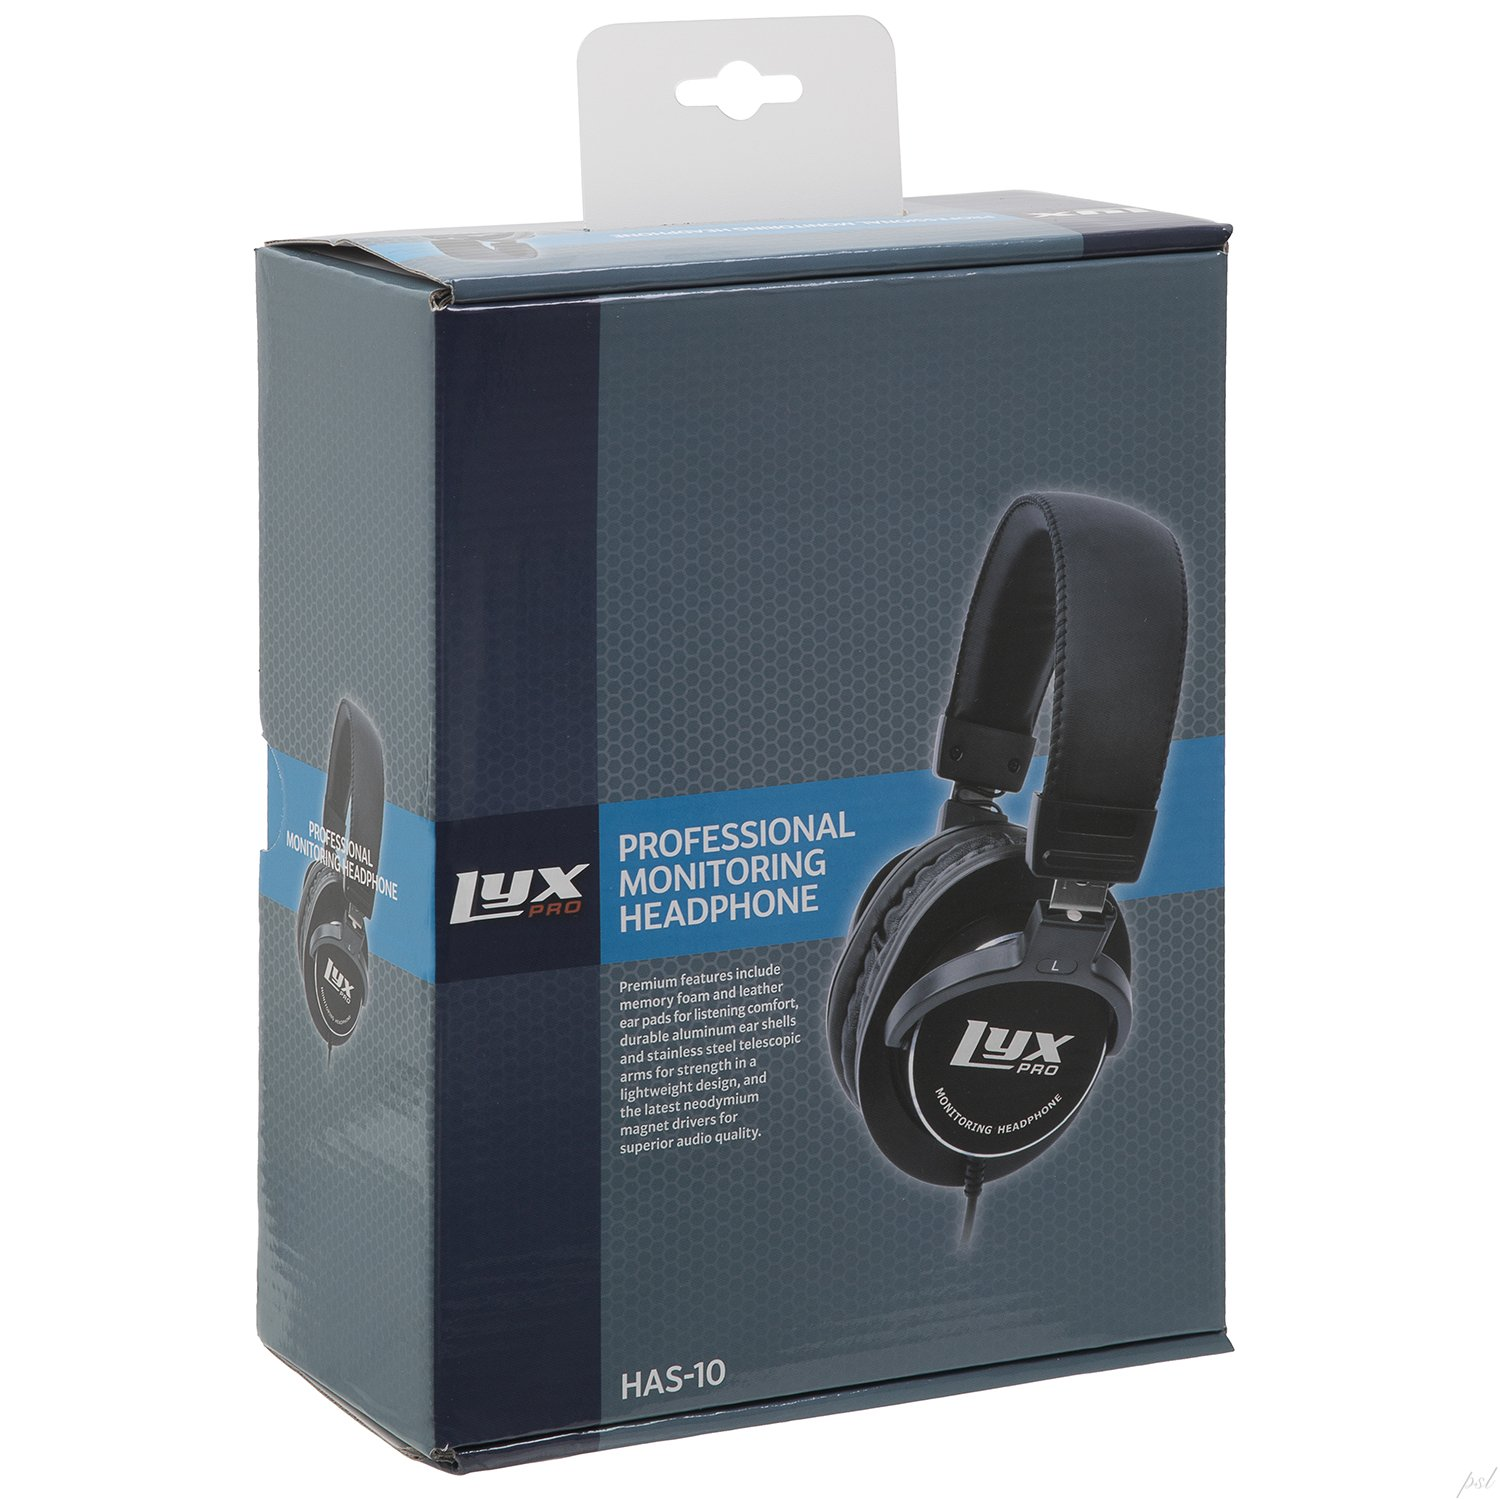 LyxPro HAS-10 Closed Back Over-Ear Professional Studio Monitor & Mixing Headphones,Music Listening,Piano,Sound Isolation, Lightweight by LyxPro (Image #8)